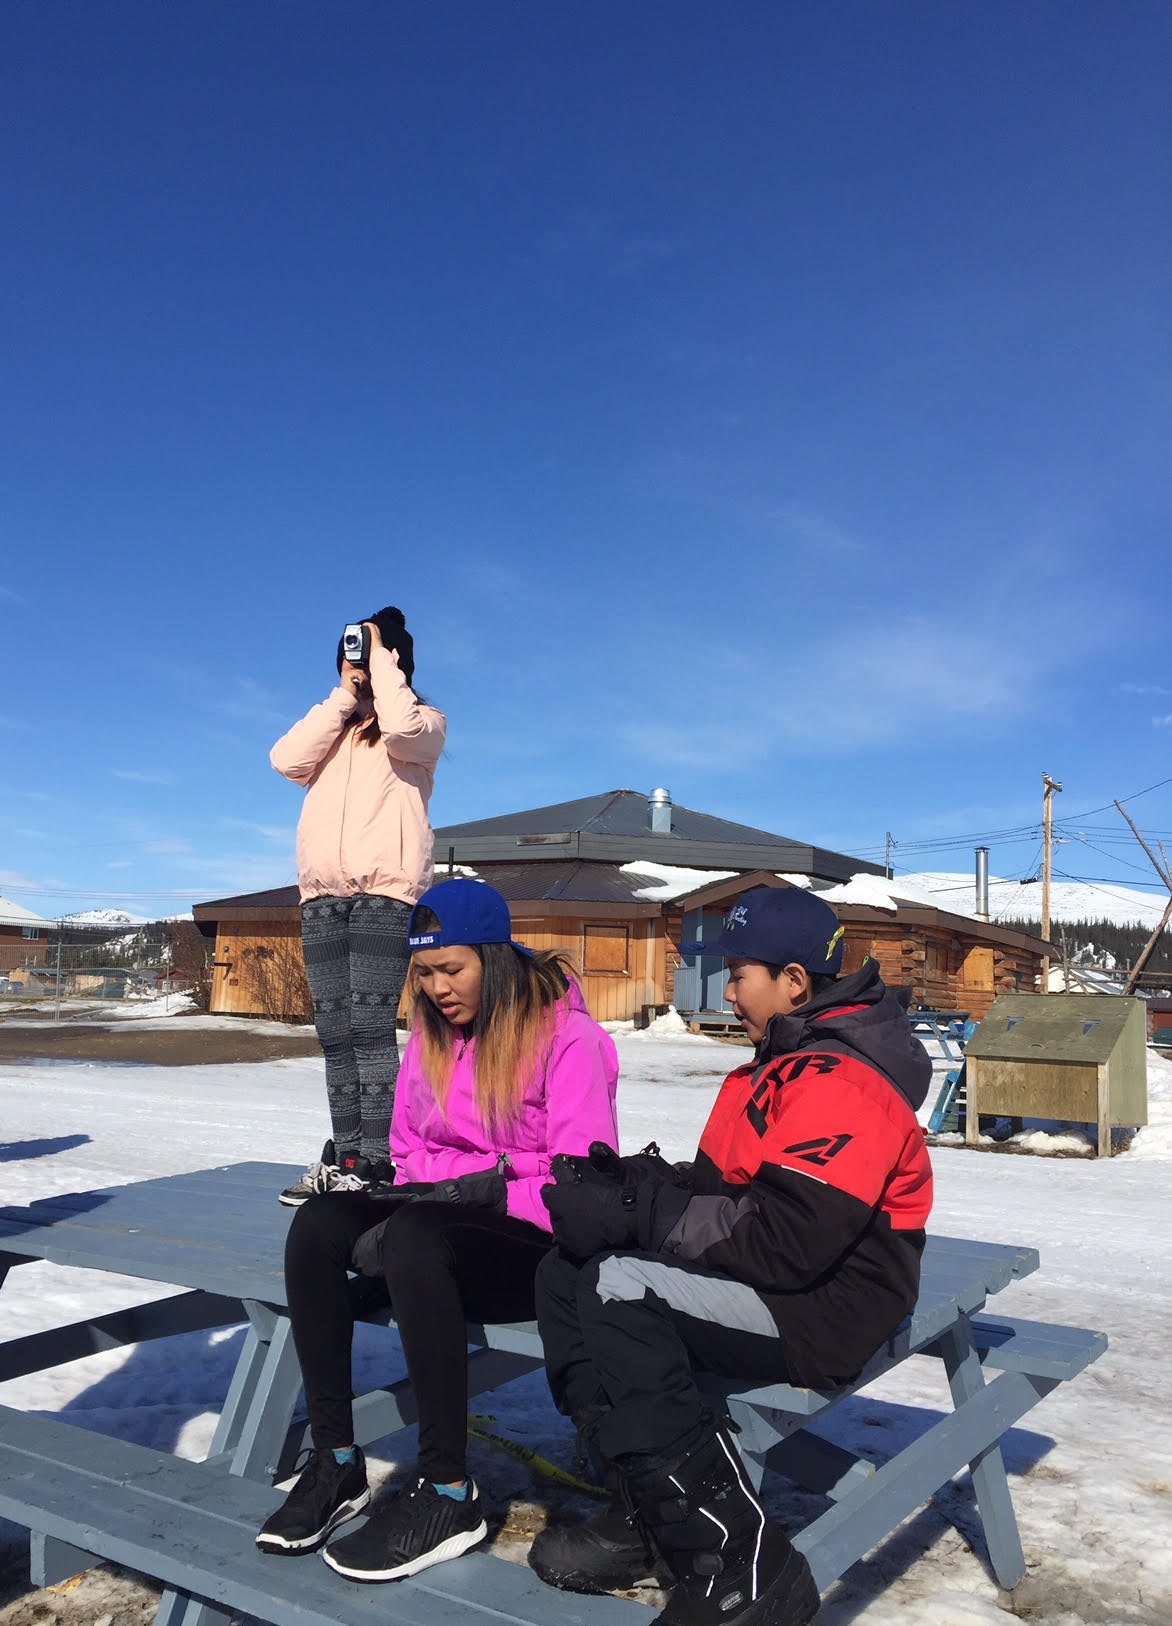 Jynesta loves the camera and gets a birds eye view of the river while Allison and Dreyden enjoy the sun